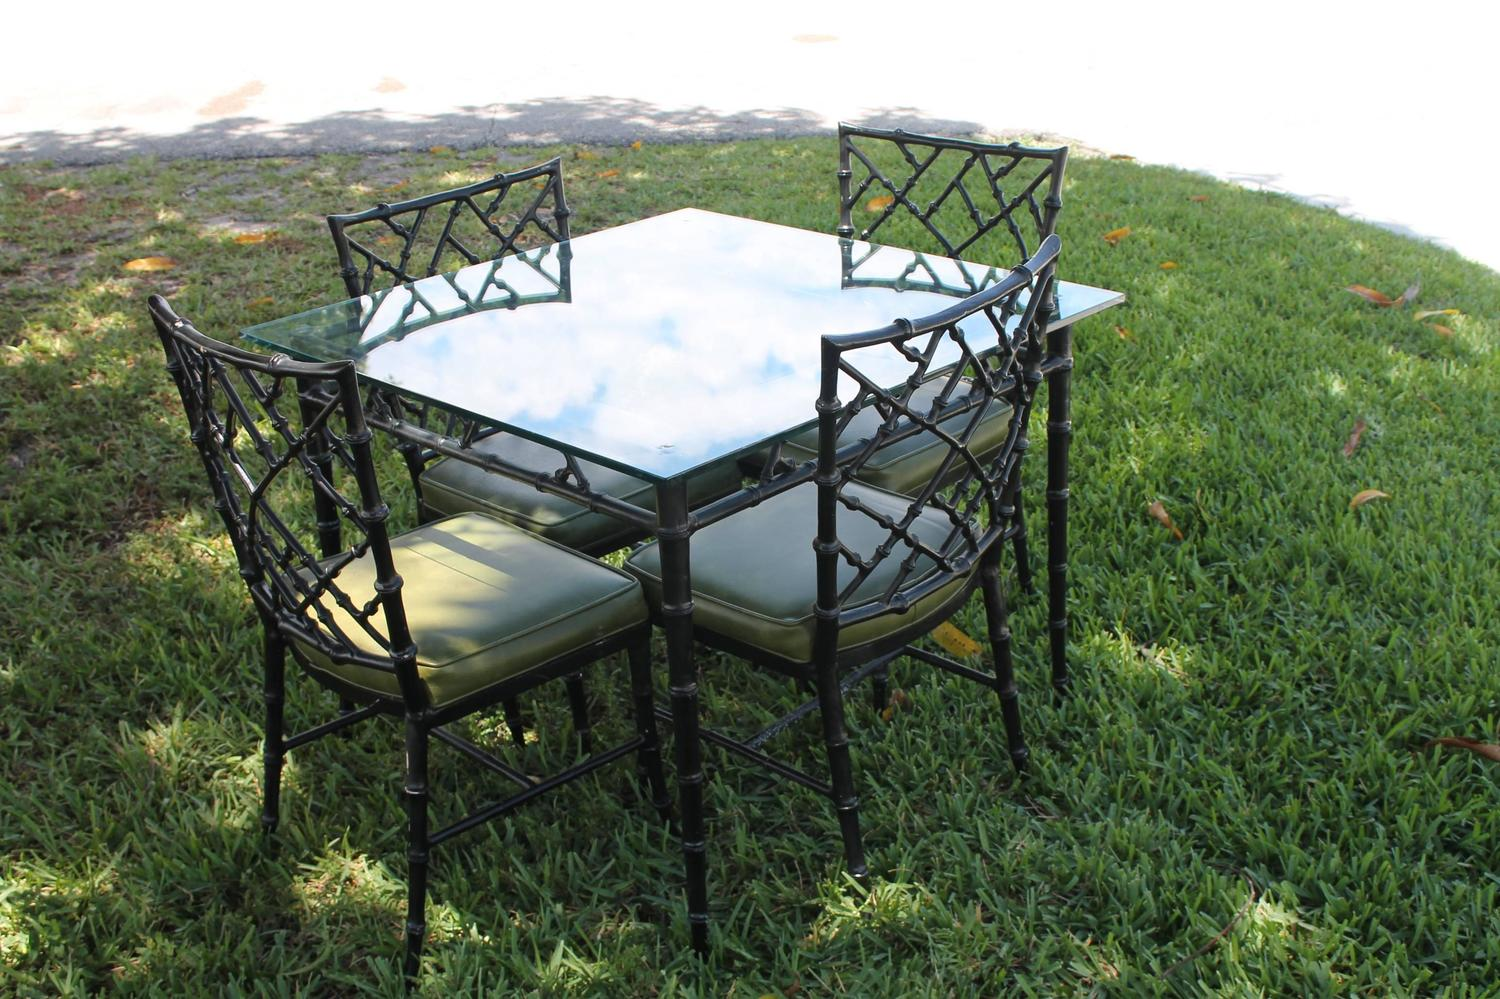 Phyllis Morris Patio Set Dining Chairs And Table Faux. Patio Set Fire Pit Table. El Patio Restaurant. Patio Furniture Amazon Prime. Patio World Online. Concrete Patio Houzz. Installation Patio En Composite. Patio Shades Home Depot. Backyard Patio Grill Island